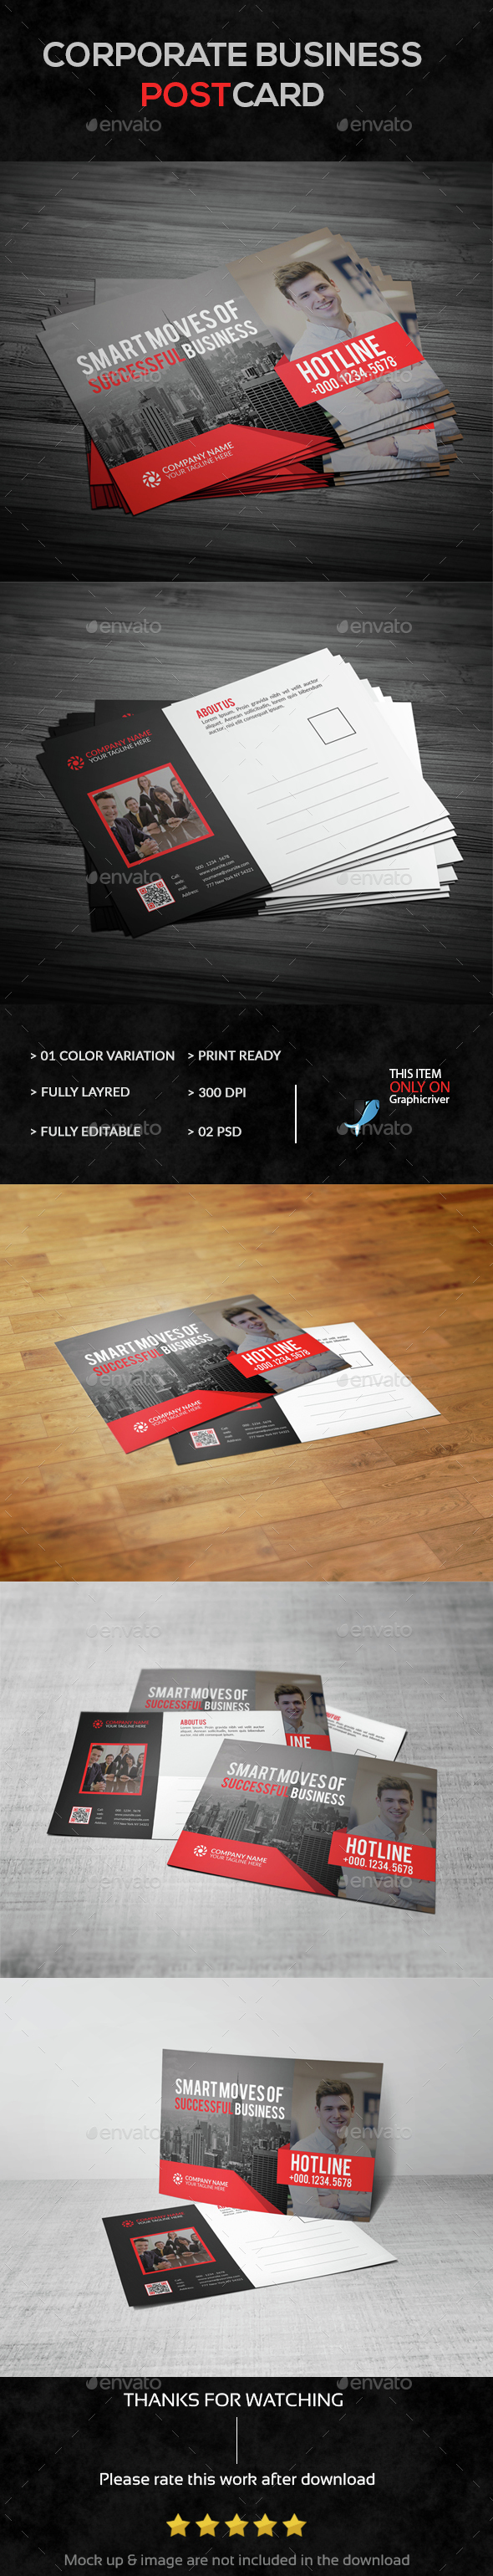 Corporate Business Post Card - Cards & Invites Print Templates